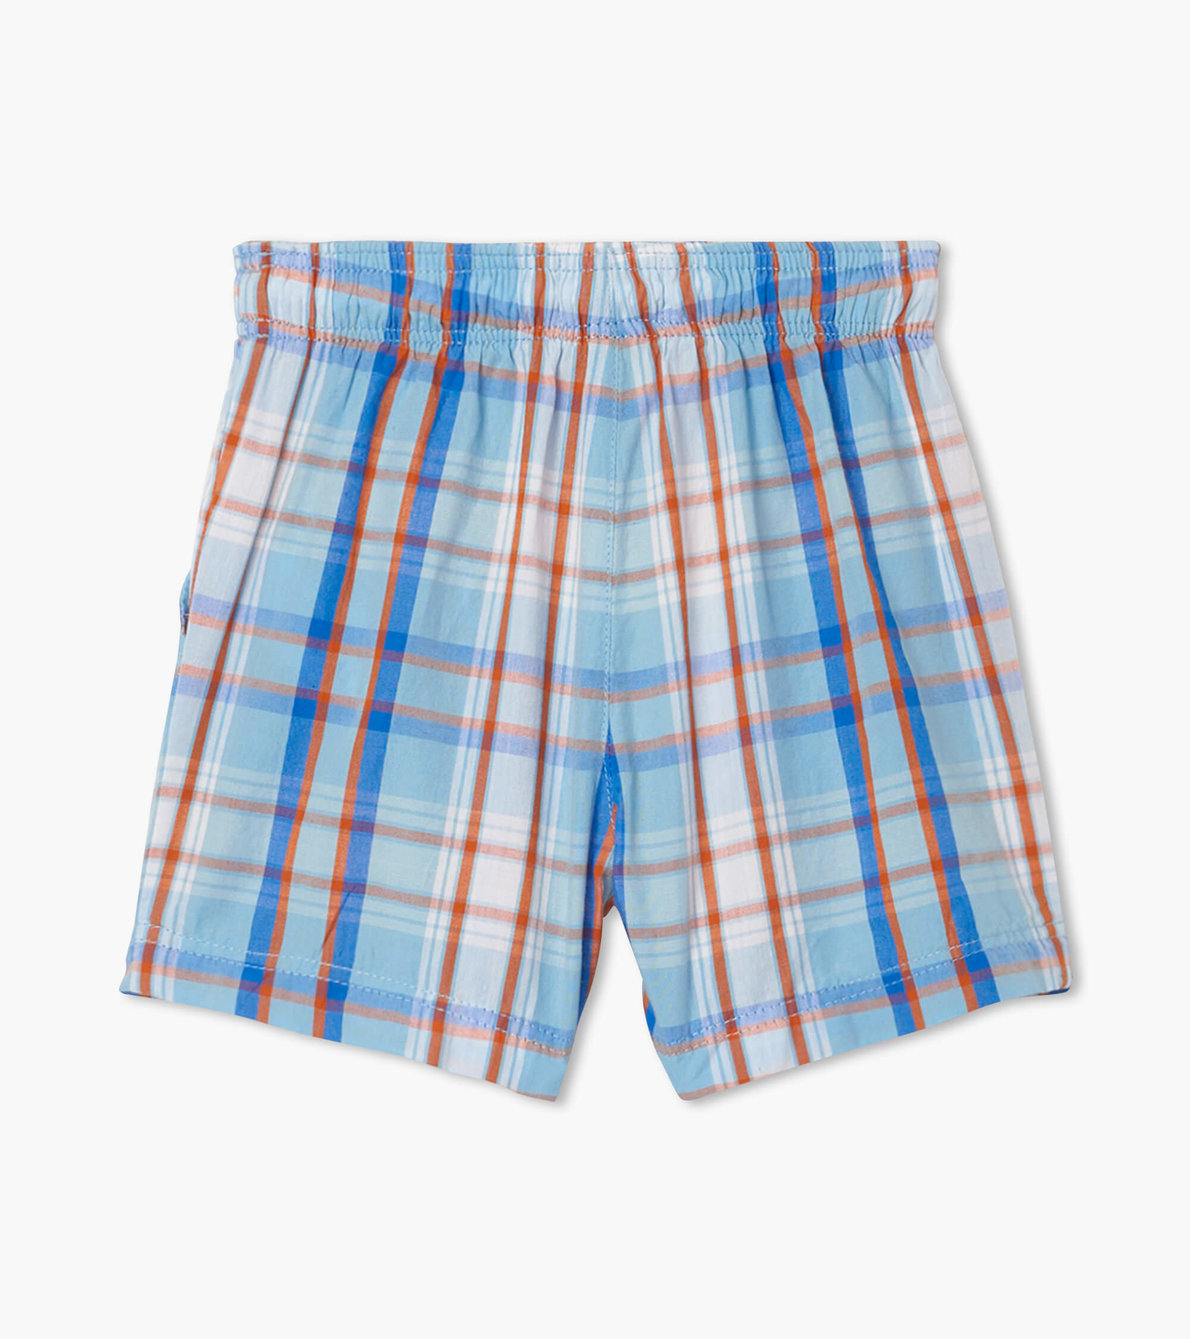 View larger image of Blue Plaid Baby Woven Shorts